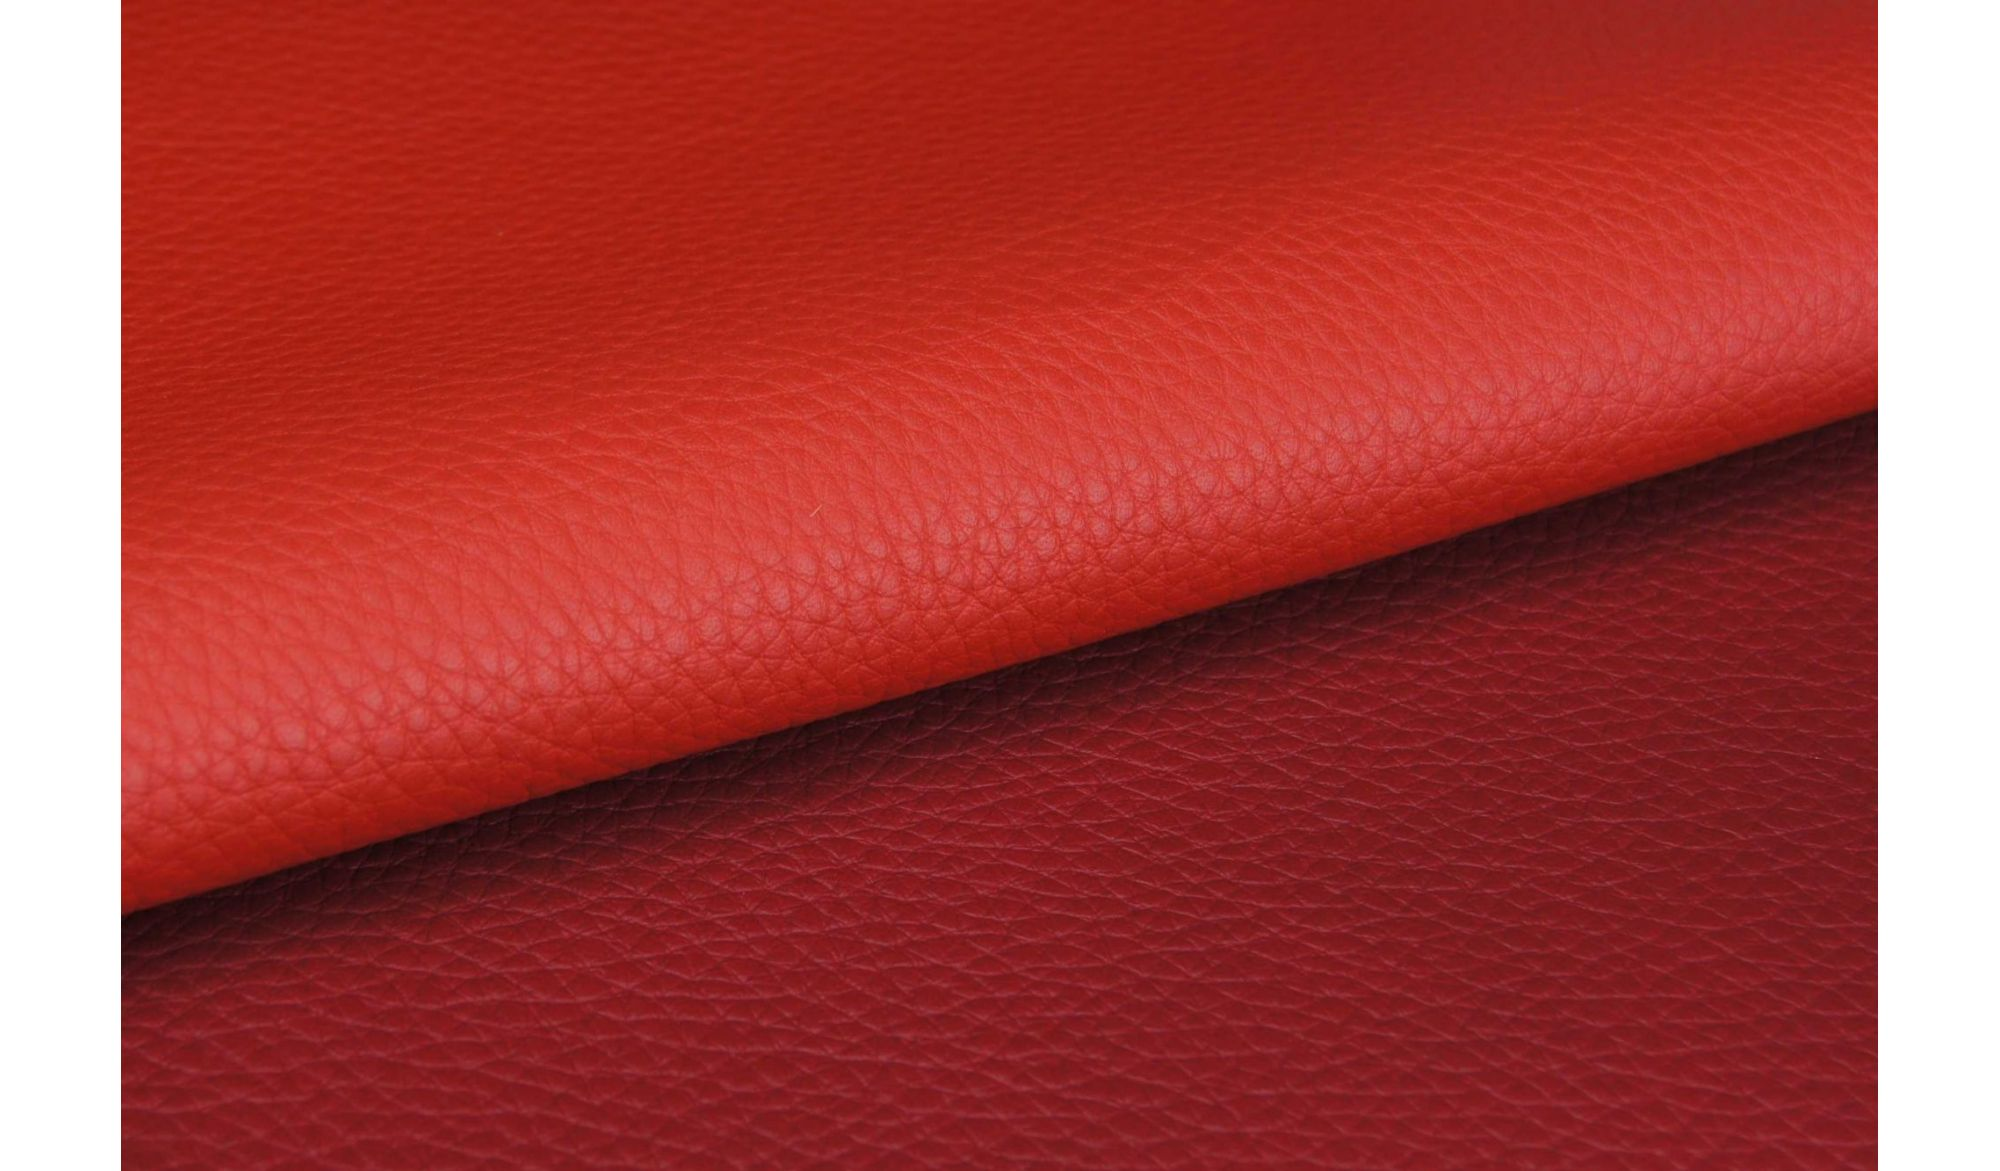 SKÓRA ALPIN Raspberry 27092 - Leather alt_skory_kolor_raspberry 27092 Upholstery IMO Plain - Visualisation